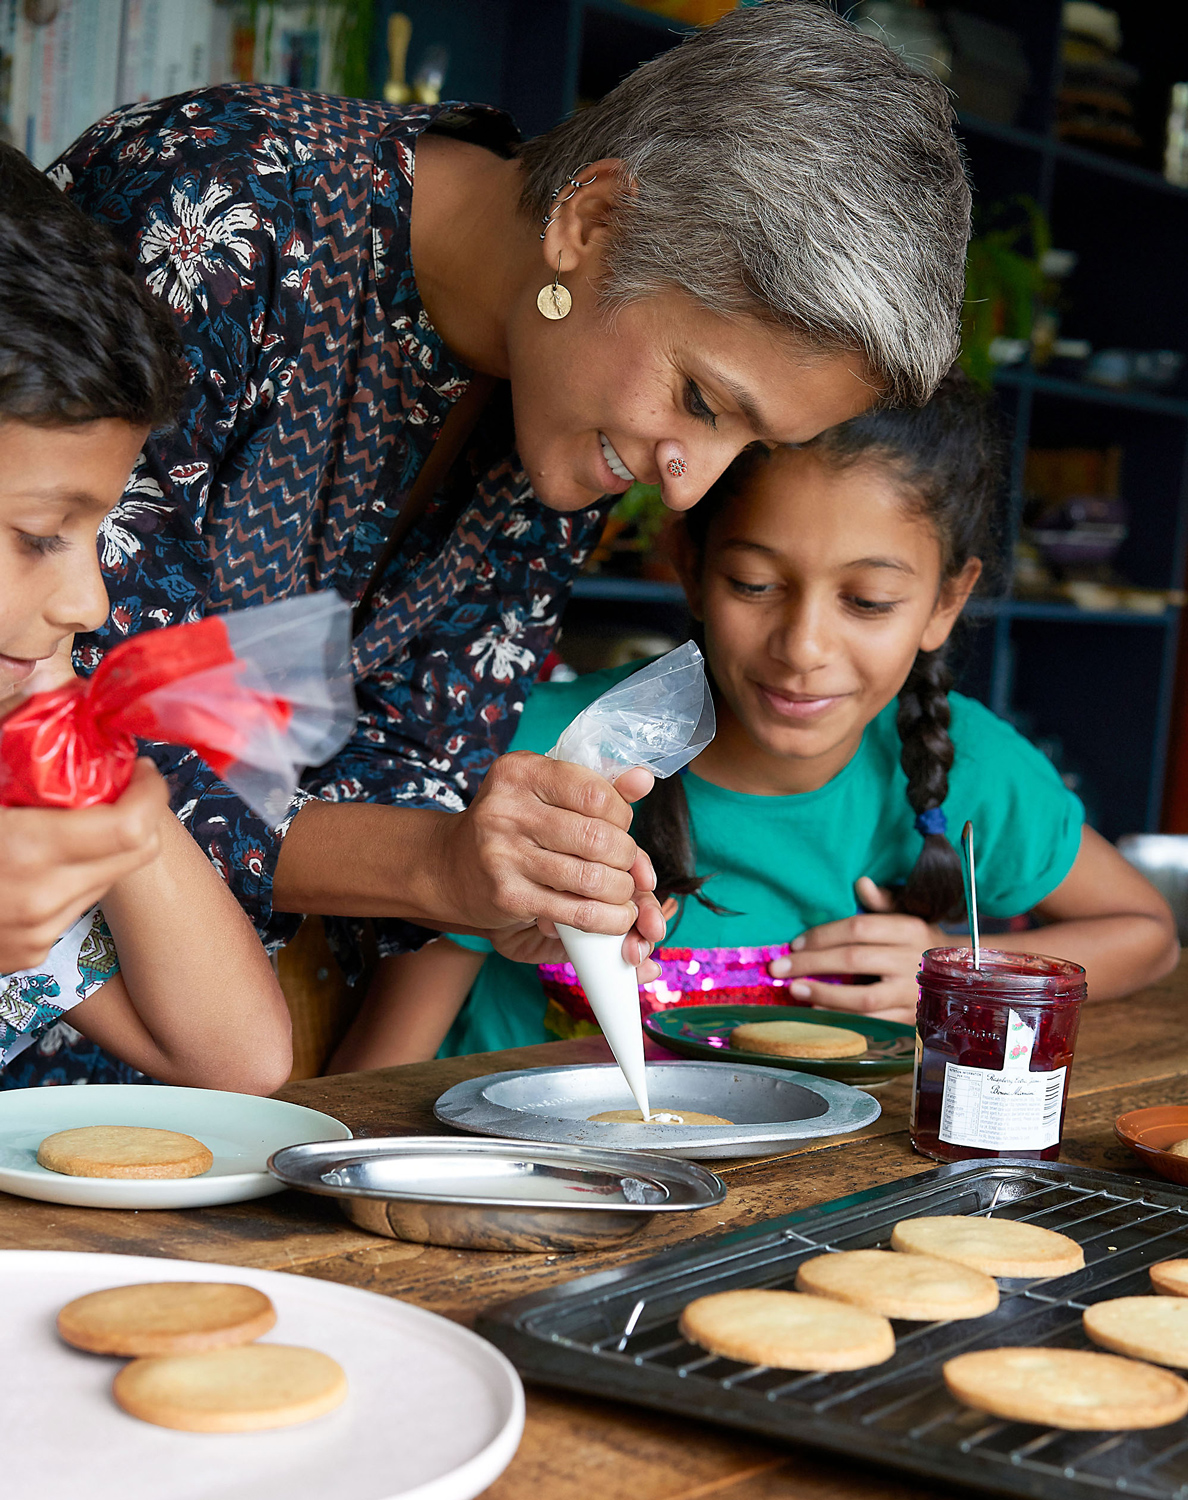 Chetna decorating cookies with kids